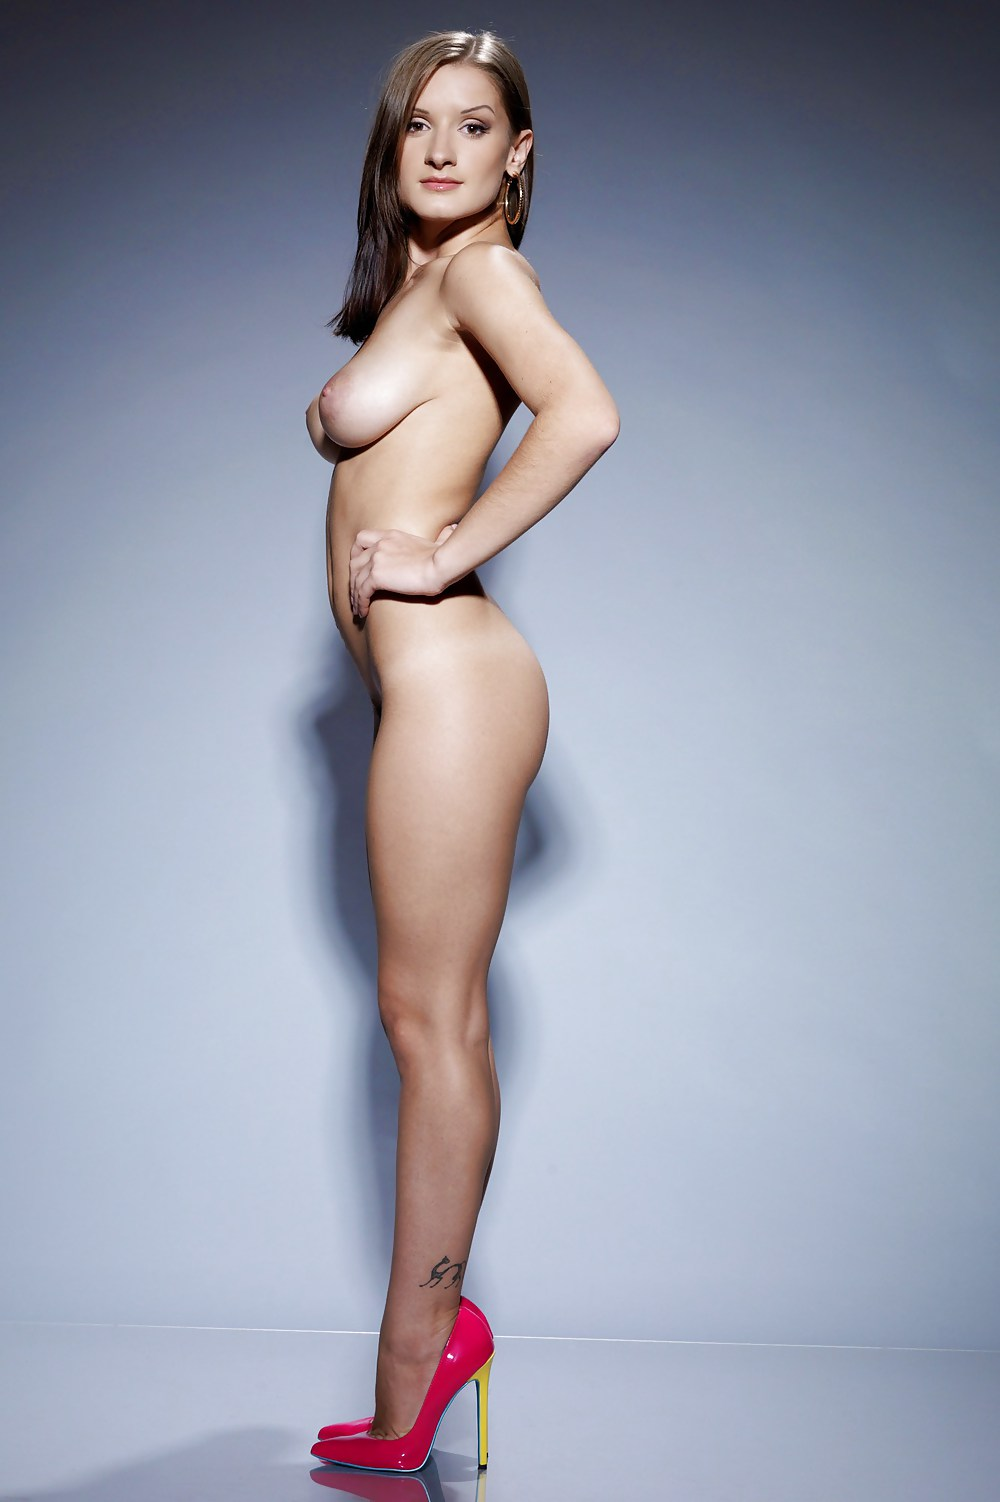 Pictures Of Naked Women In High Heels